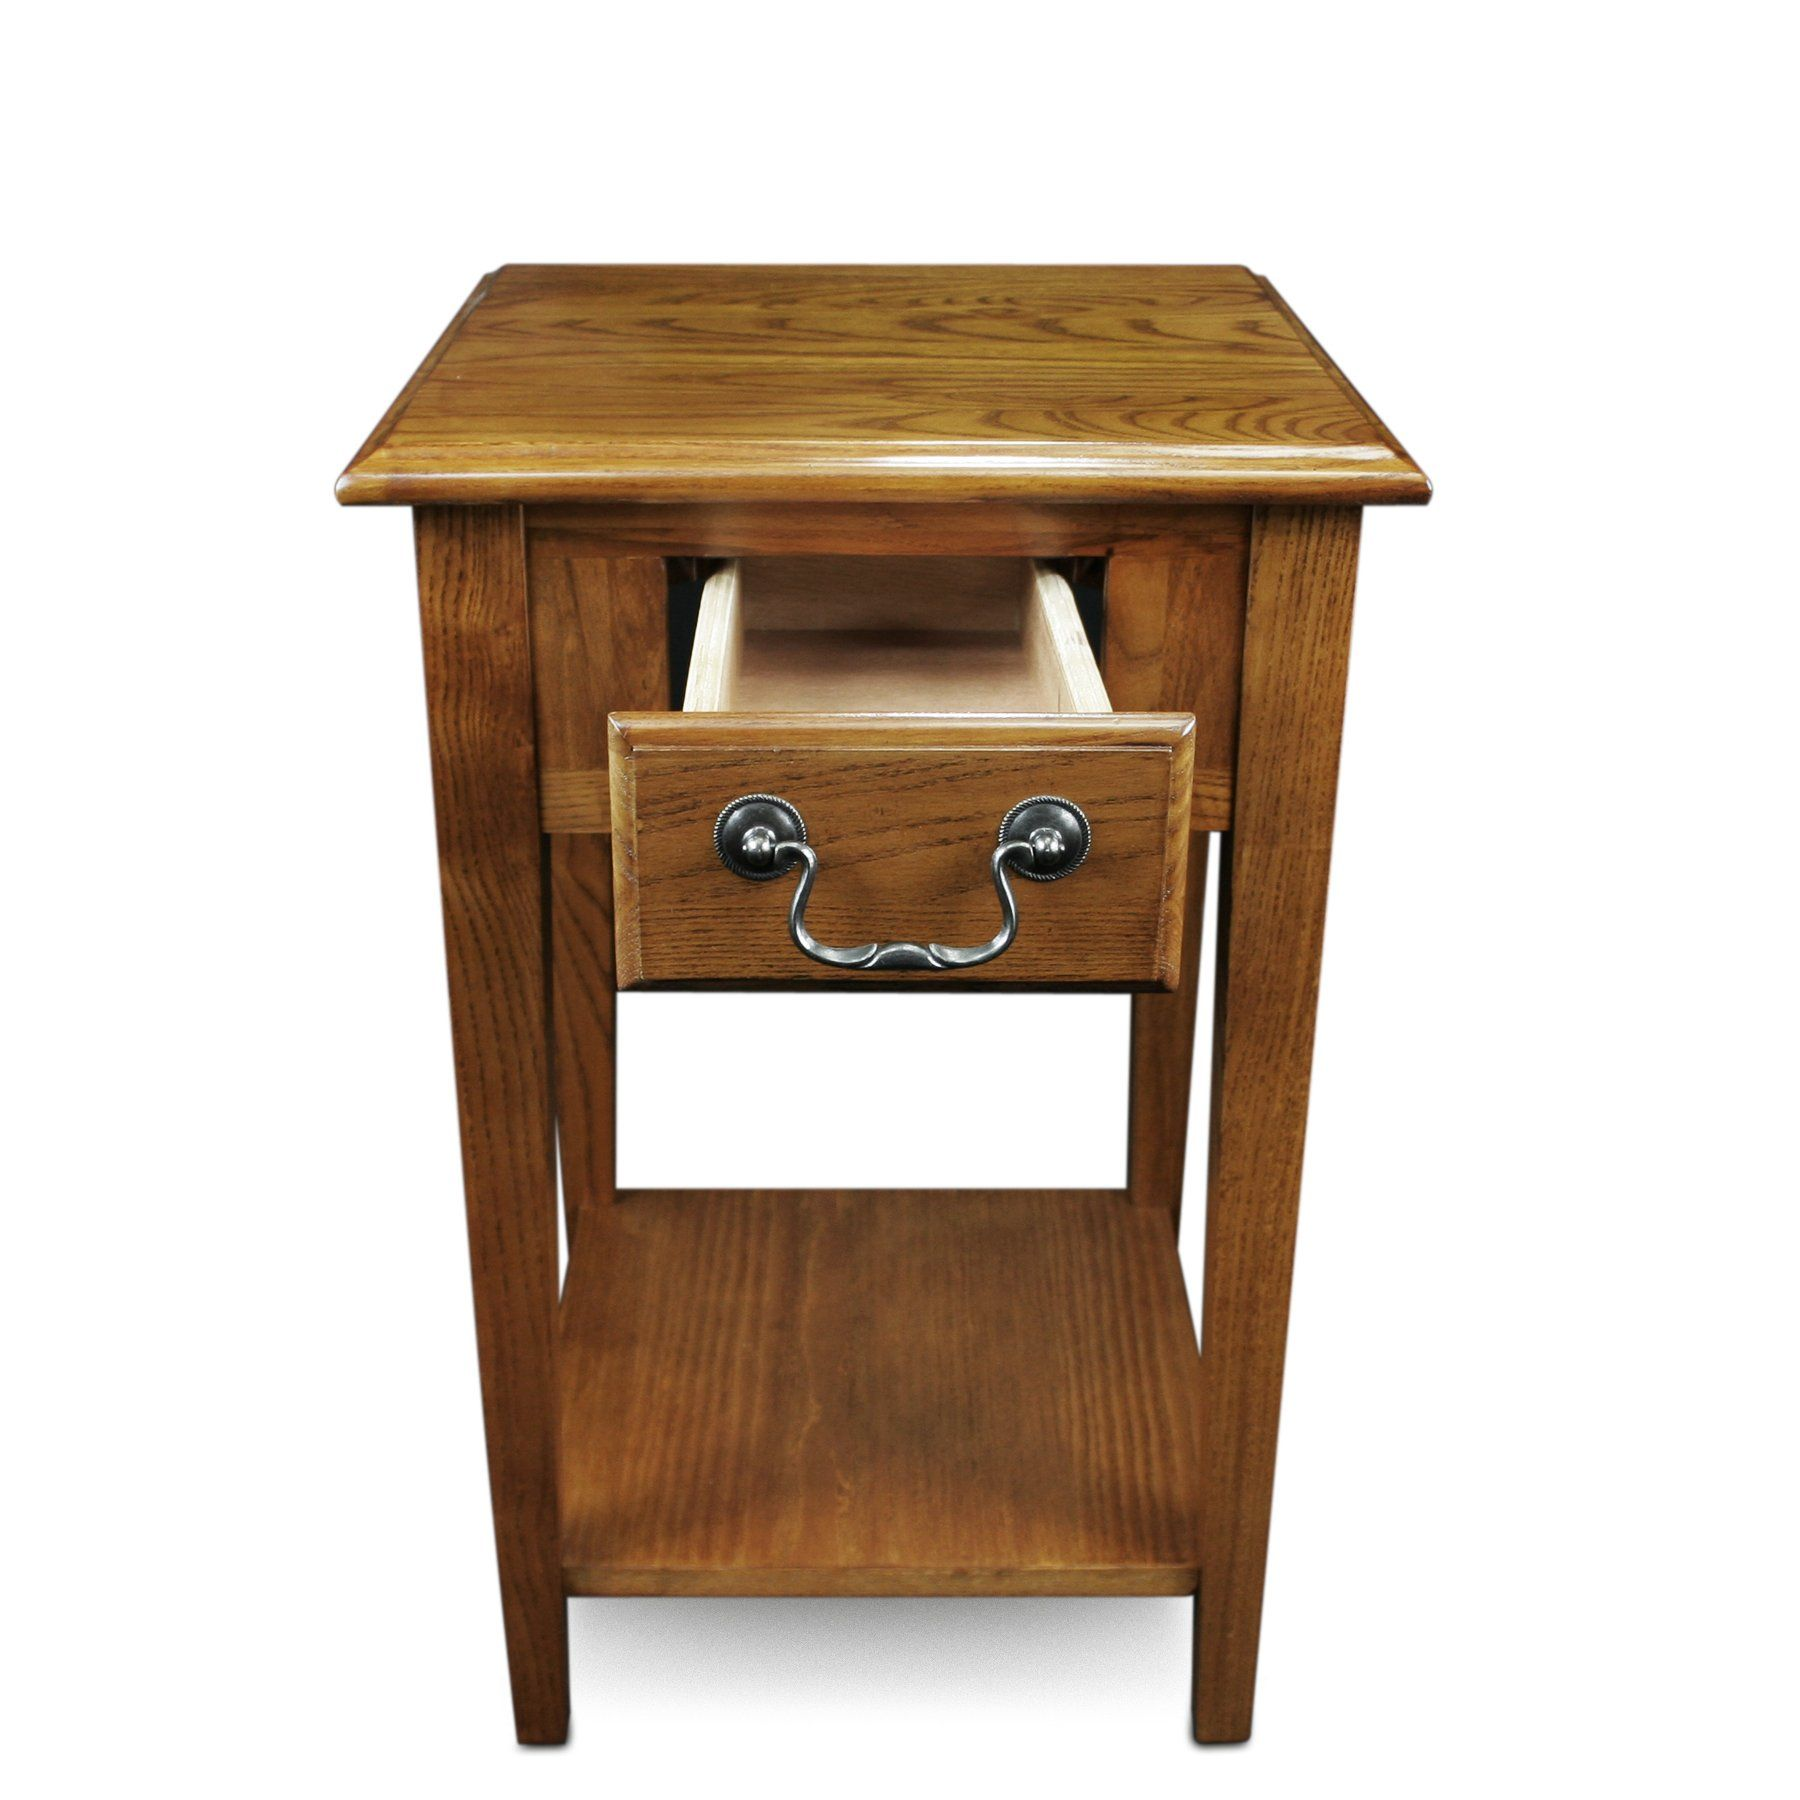 Leick Shaker Square End Table Medium Oak Click On The Image For Additional Details It Is Amazon Affiliate Link Oak End Tables Square Tables End Tables #oak #end #tables #for #living #room